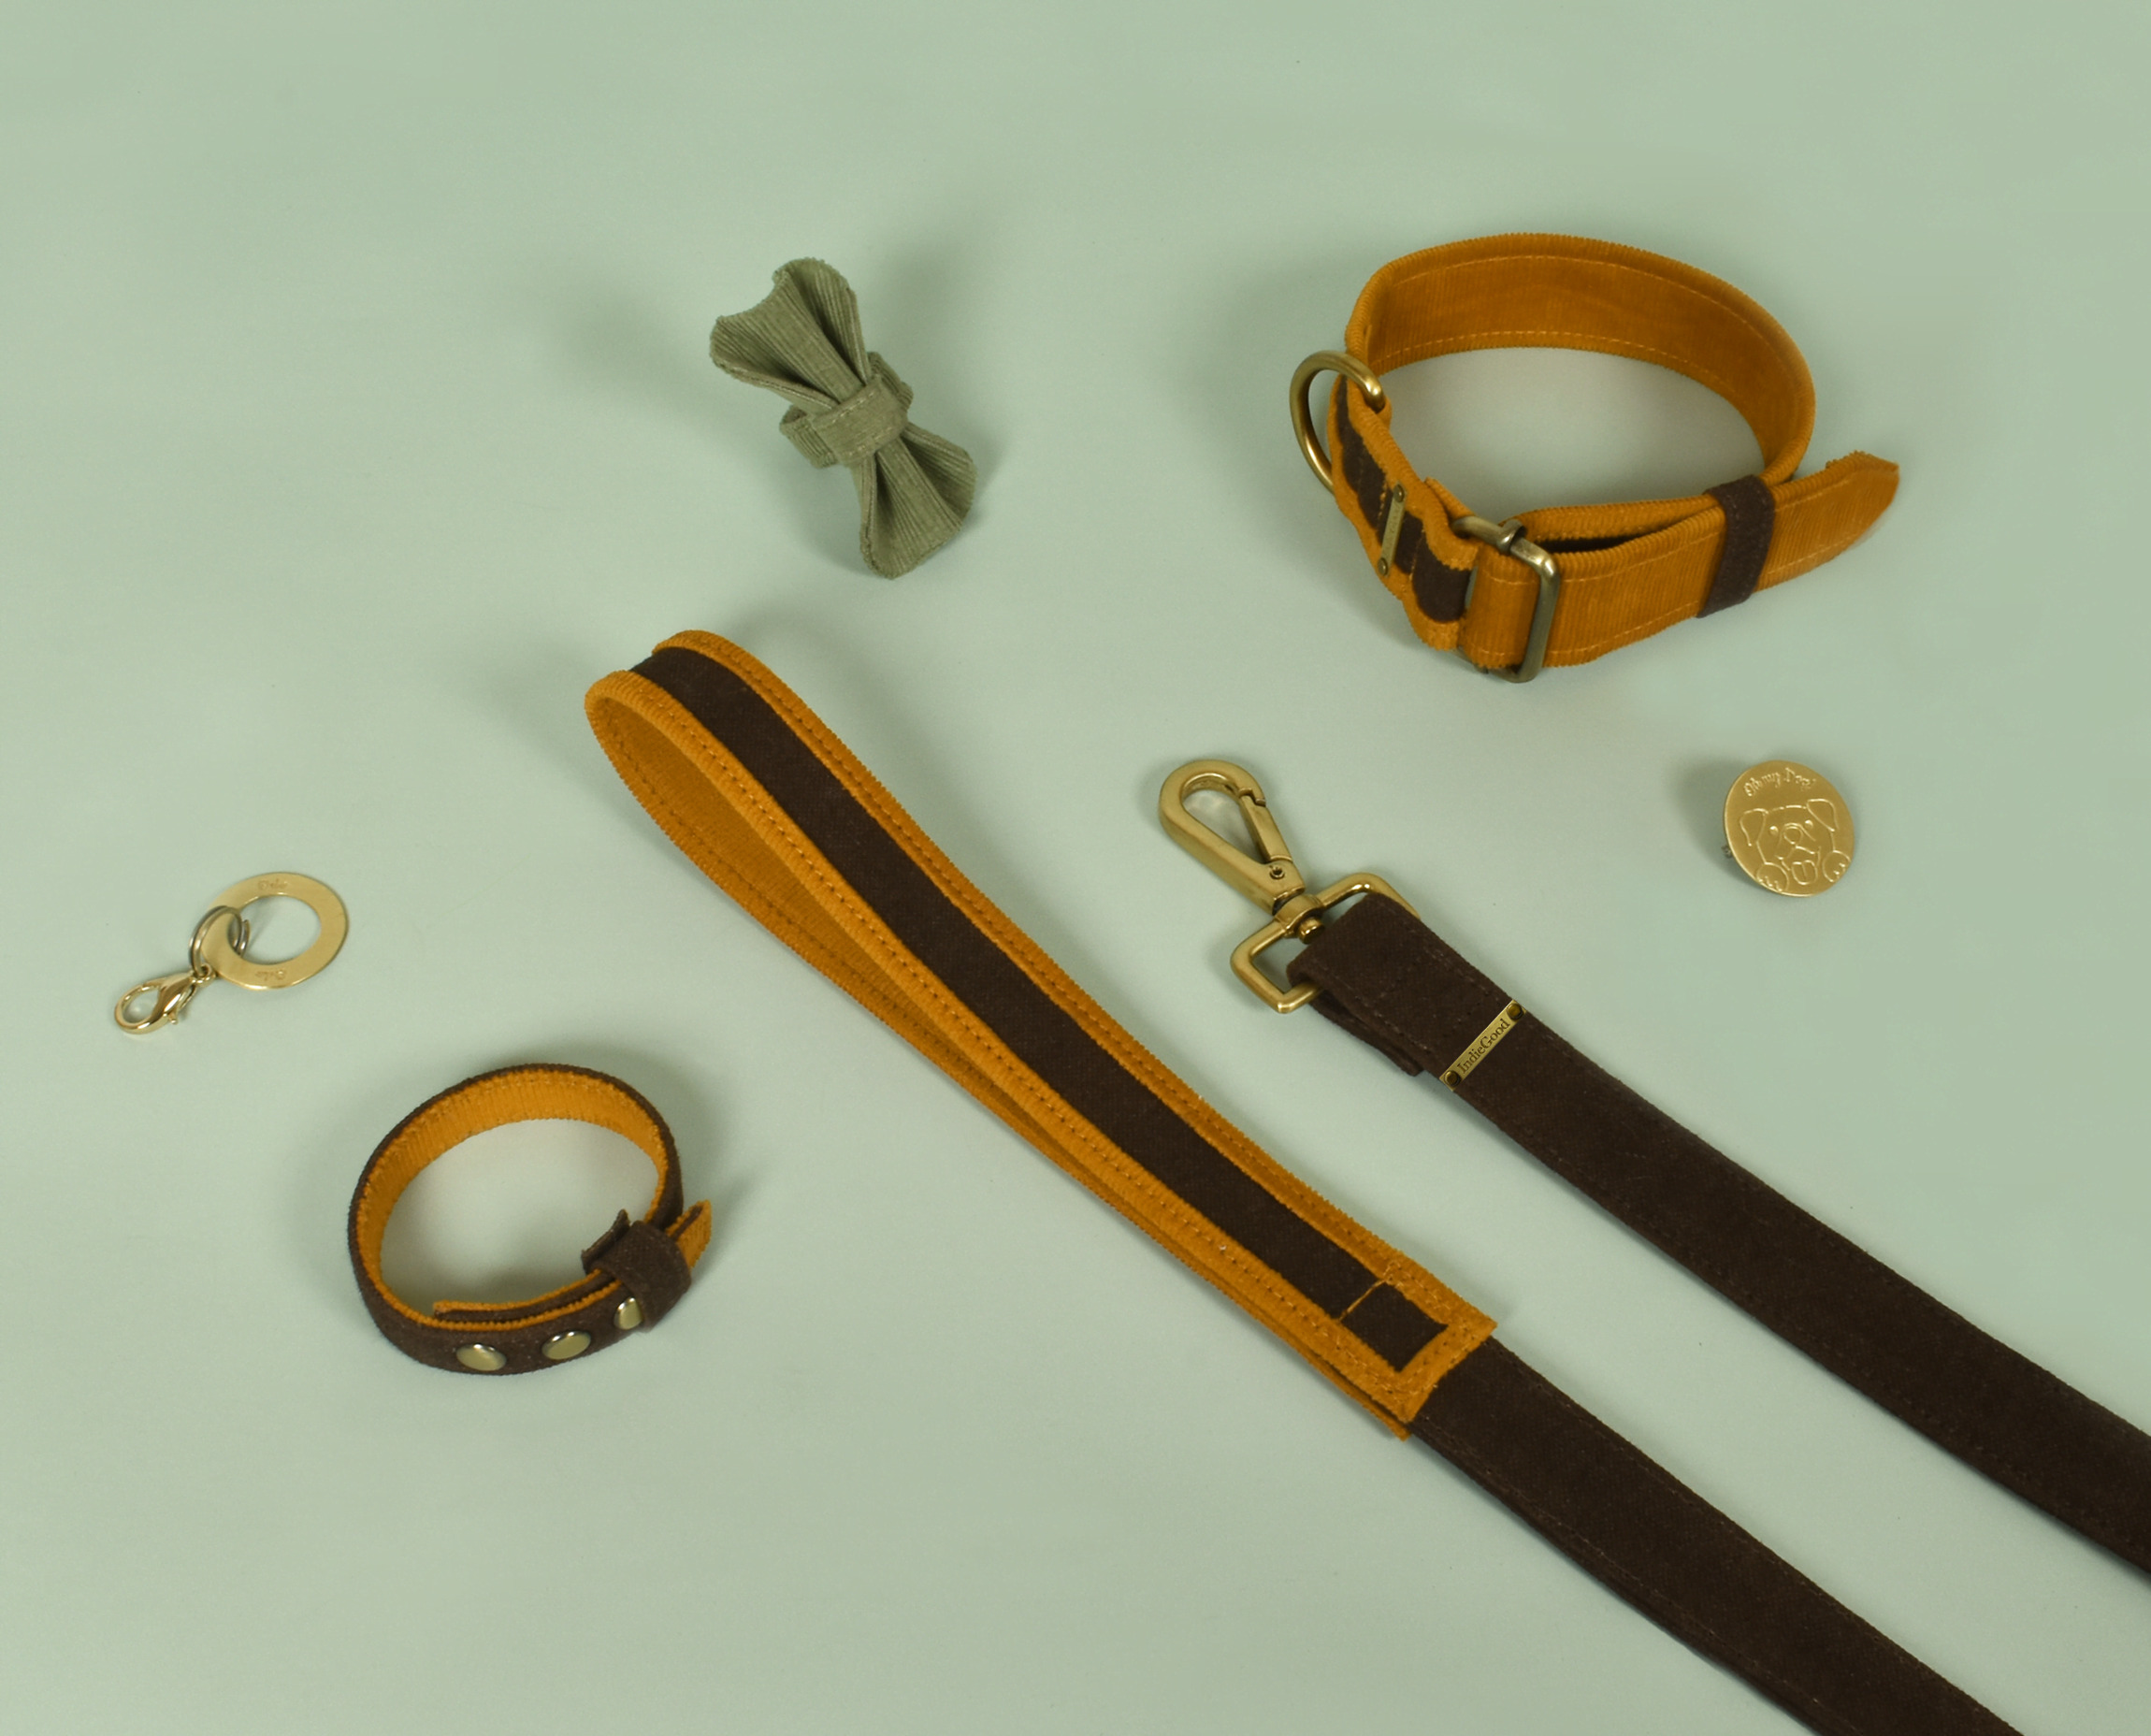 A complete collection of accessories to make and celebrate the bond between you and your pawdorable Family Member! It includes our Collar and Leash which are made using organic materials that are soft on skin and are strong as well. A custom Name Tag for your dog made of brass. A Pin and a Bowtie which adds the extra charm to your paw friend. A matching bracelet as a friendship collar which celebrates the bond between you and your pet. The bracelet closes with three snap buttons so they can fit every wrist size.